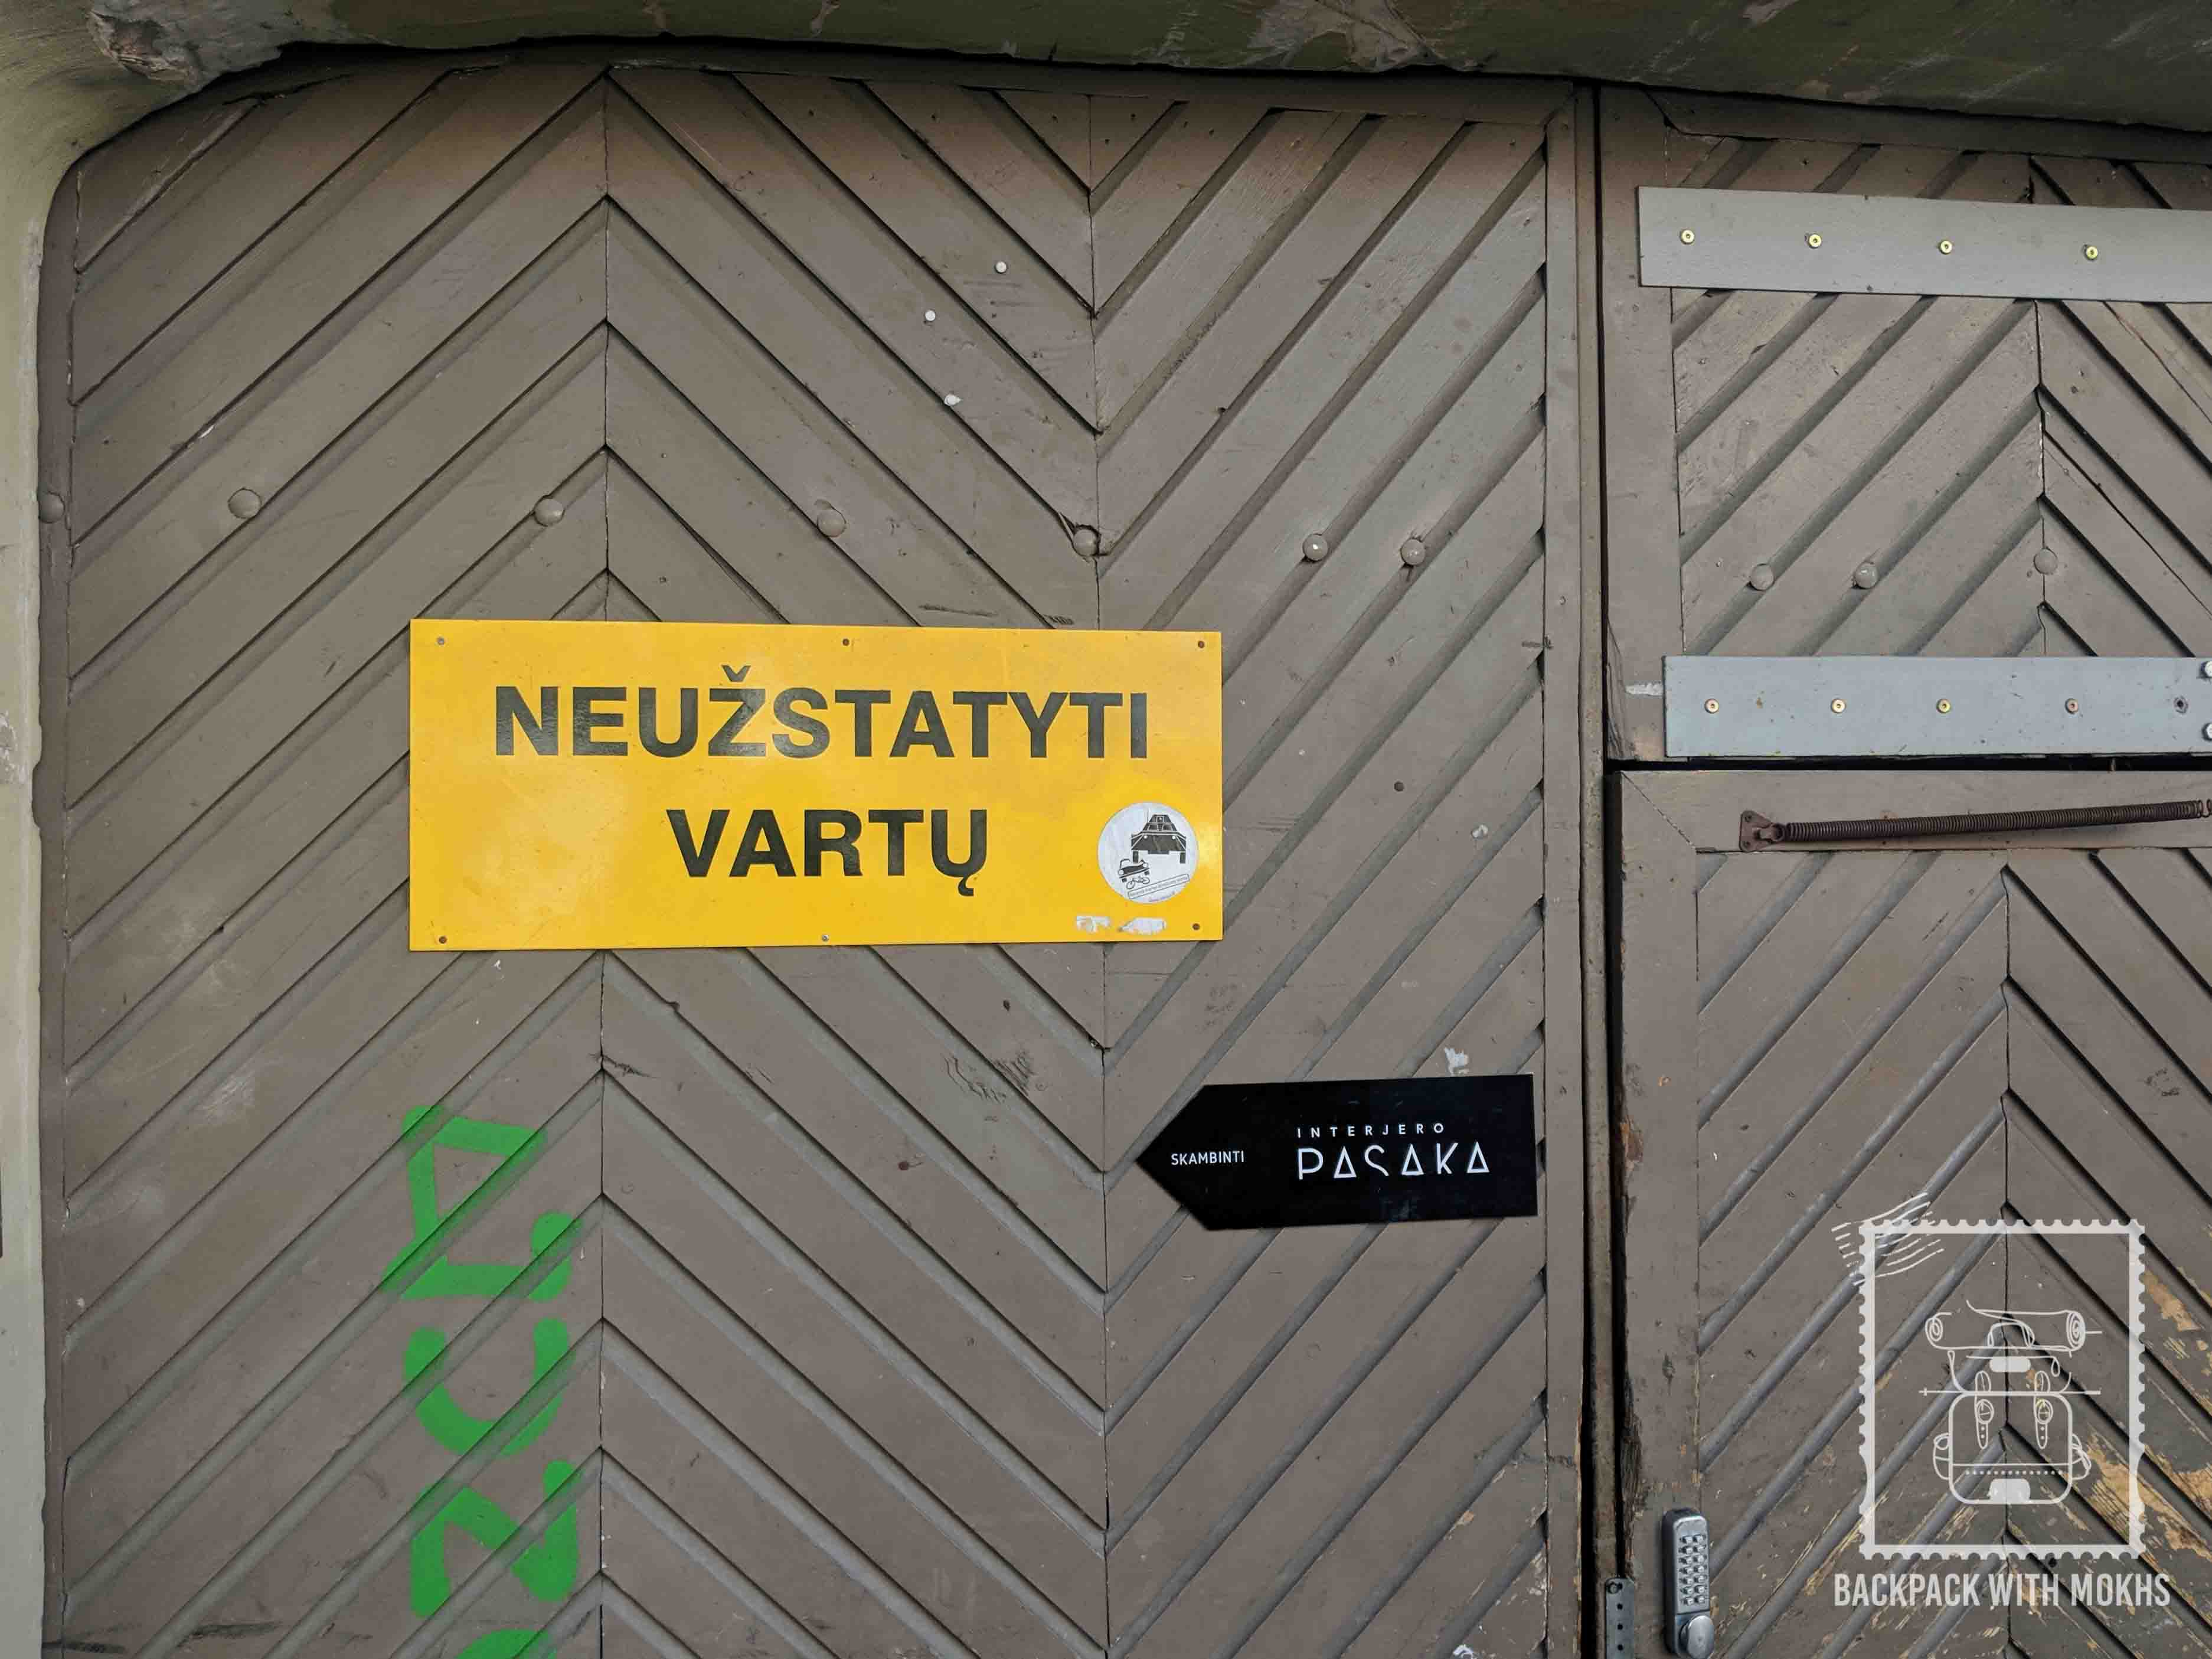 Warning signs in Lithuania